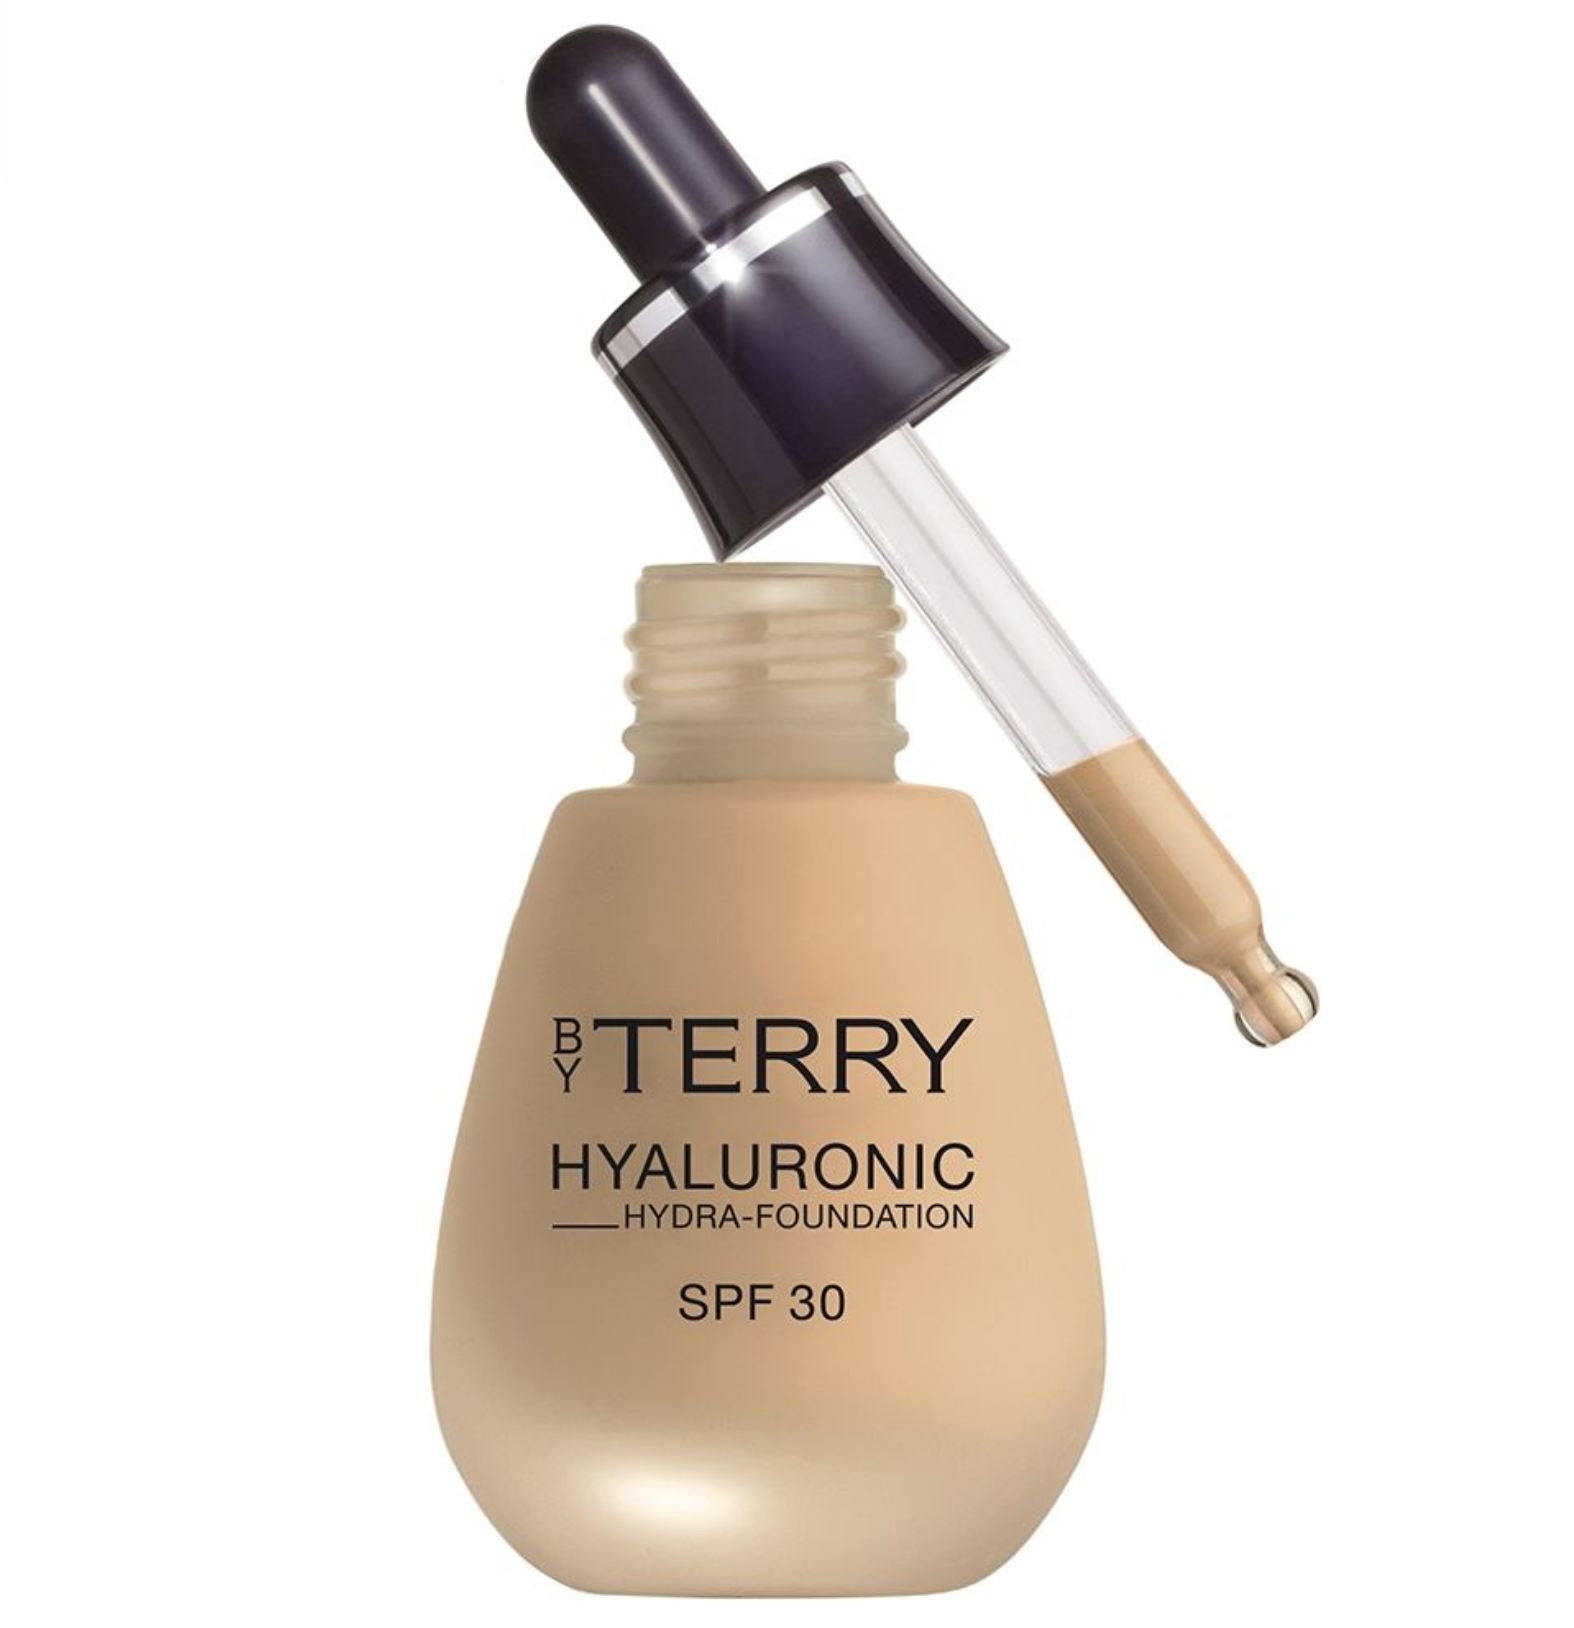 By Terry: Up to 70% Off Sales